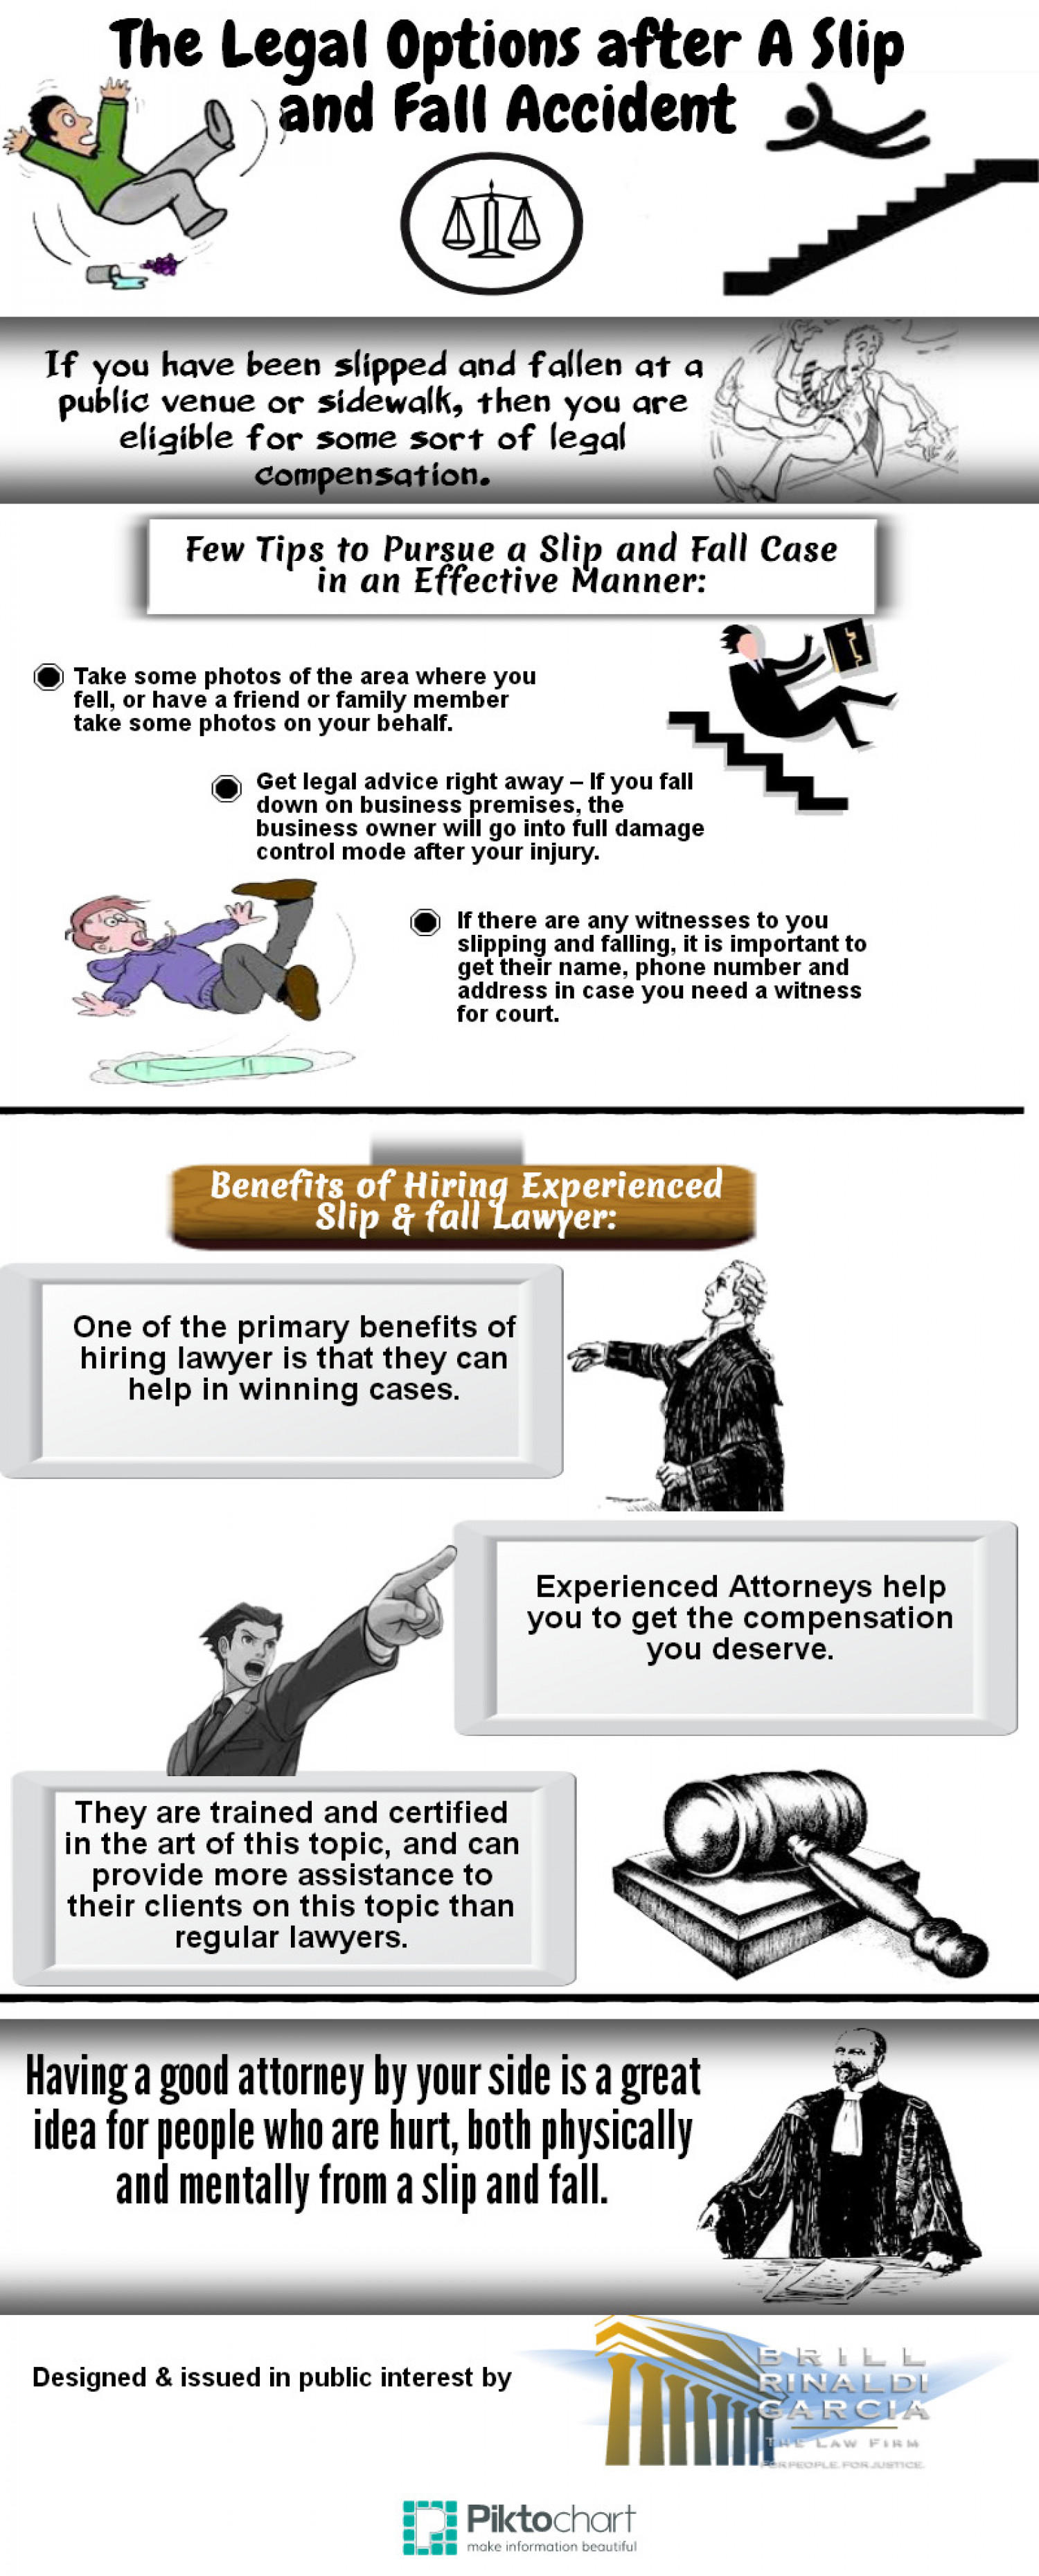 The Legal Options after A Slip and Fall Accident Infographic